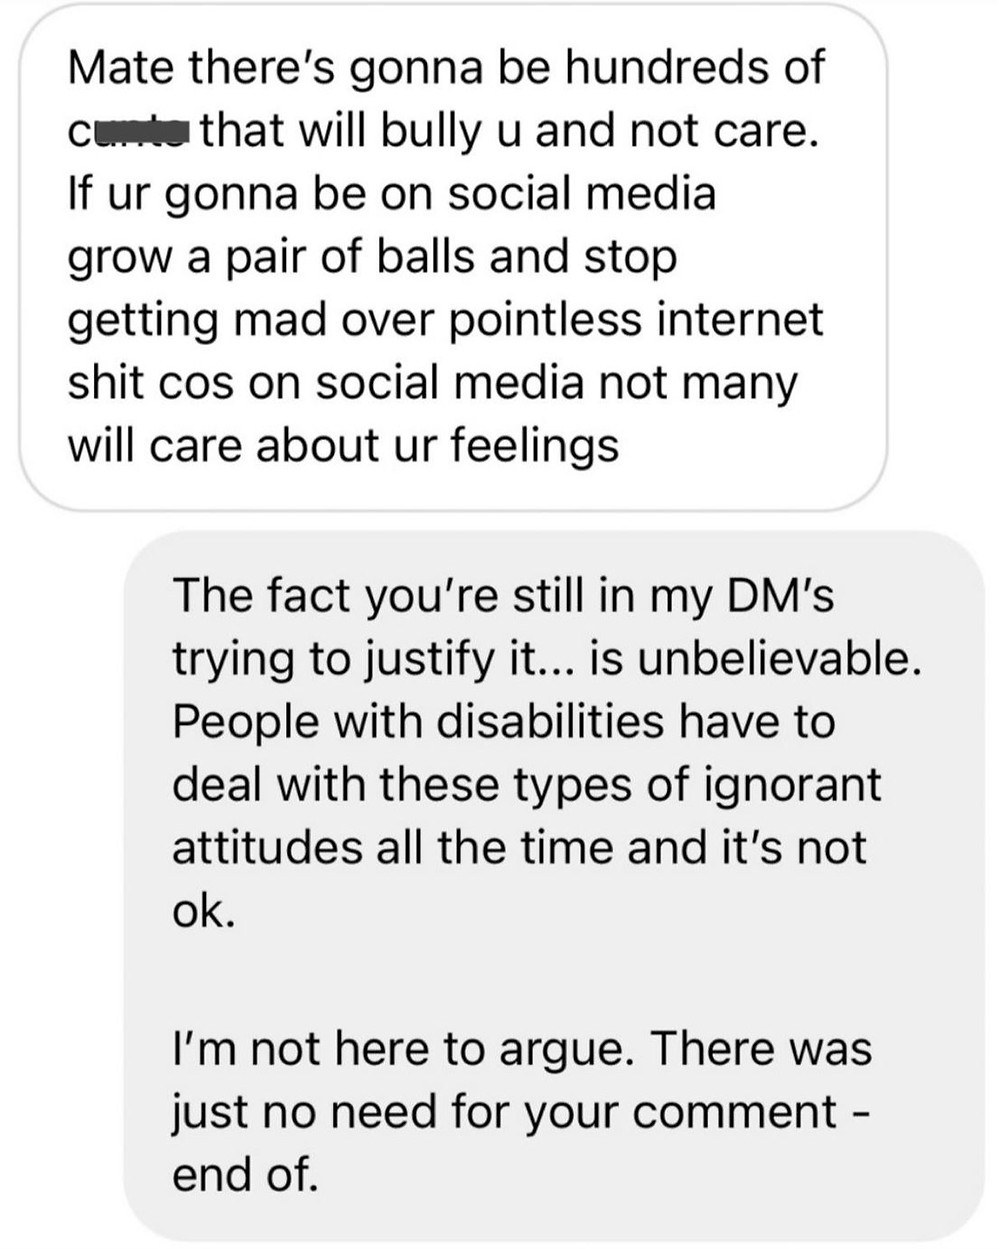 """Troll replies: """"there's going to be hundreds of cunts that will bully you and not care, grow a pair of balls and stop getting mad over pointless internet shit"""". Ross replies: """"the fact you're in my DM's trying to justify it is unbelievable. People with disability have to deal with these negative attitudes all the time and its not ok. There was no need for your comment, end of."""""""